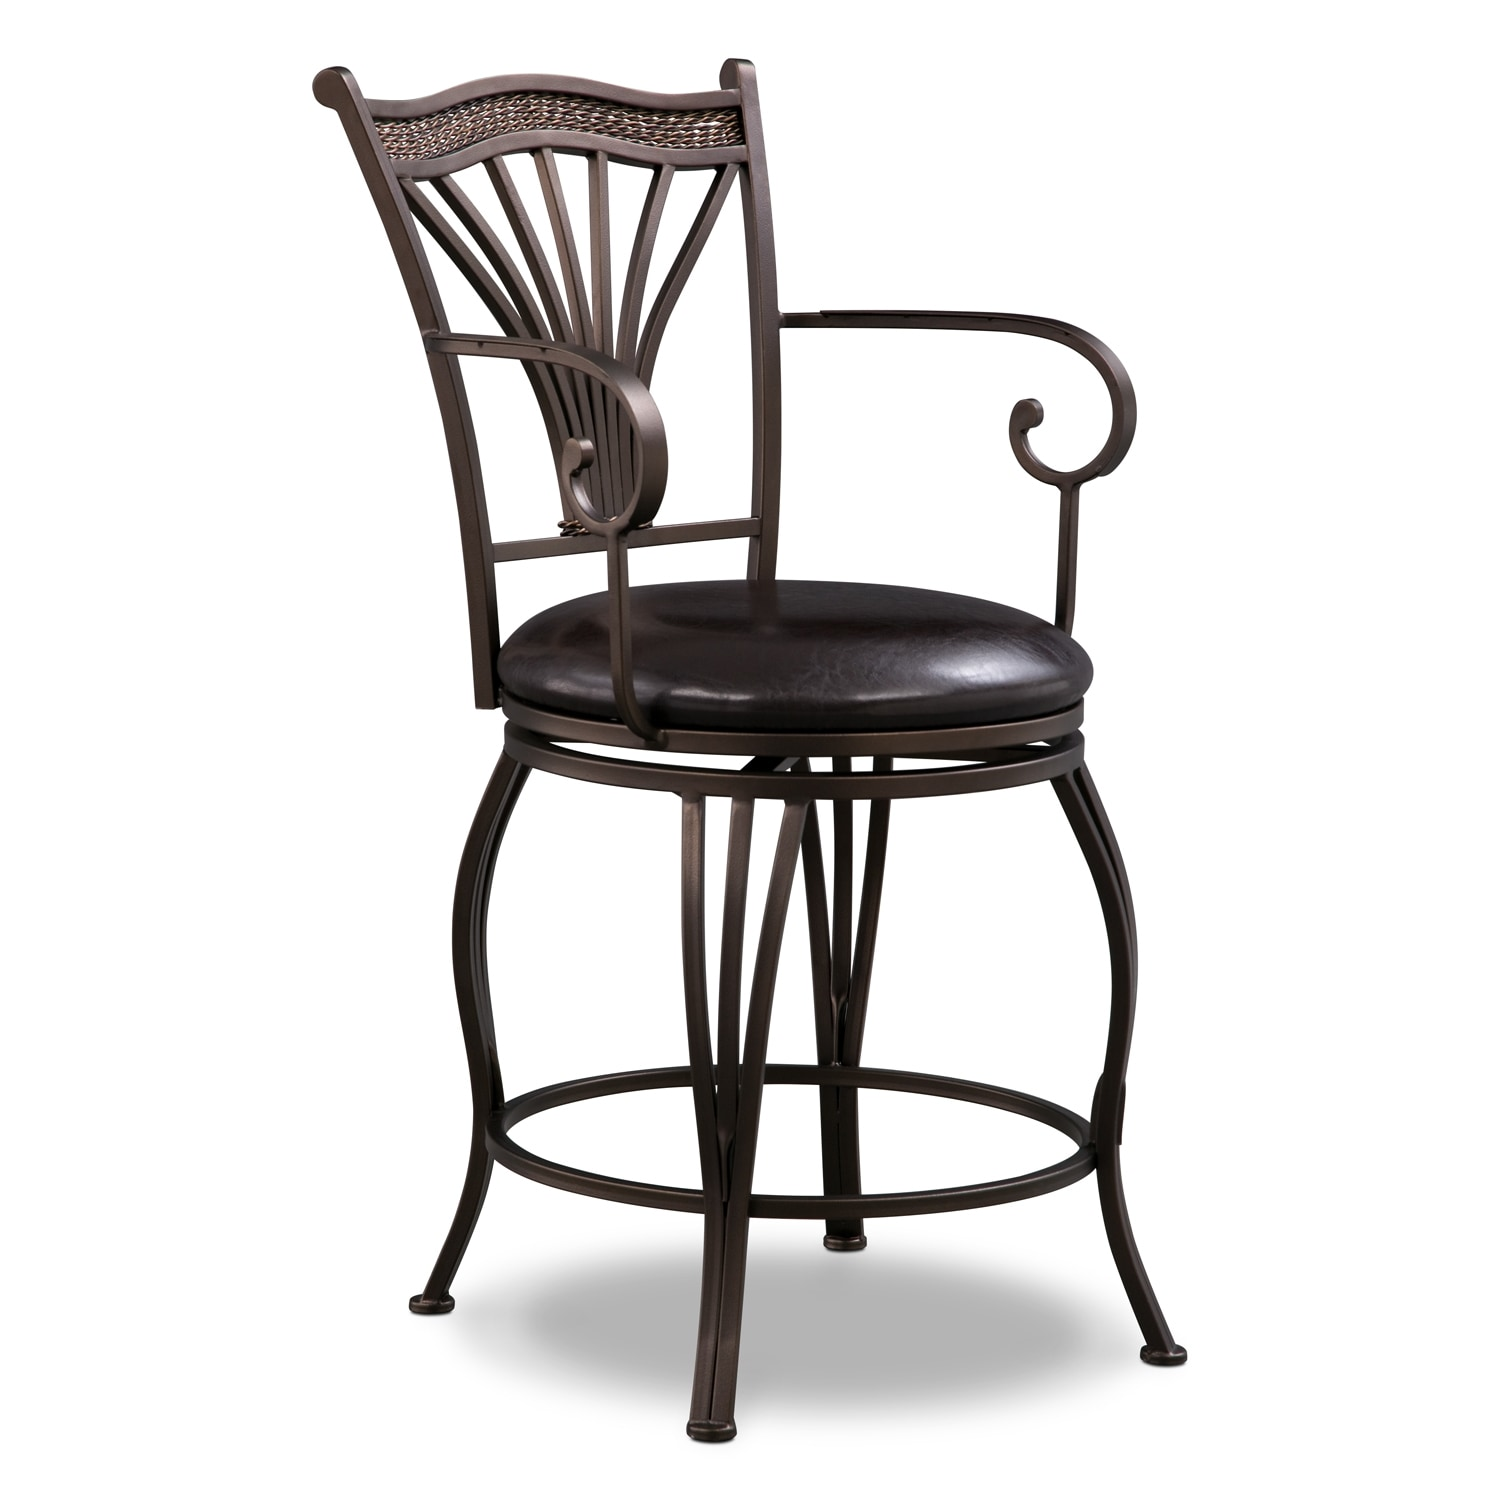 Dining Room Furniture - Morgan Counter-Height Stool